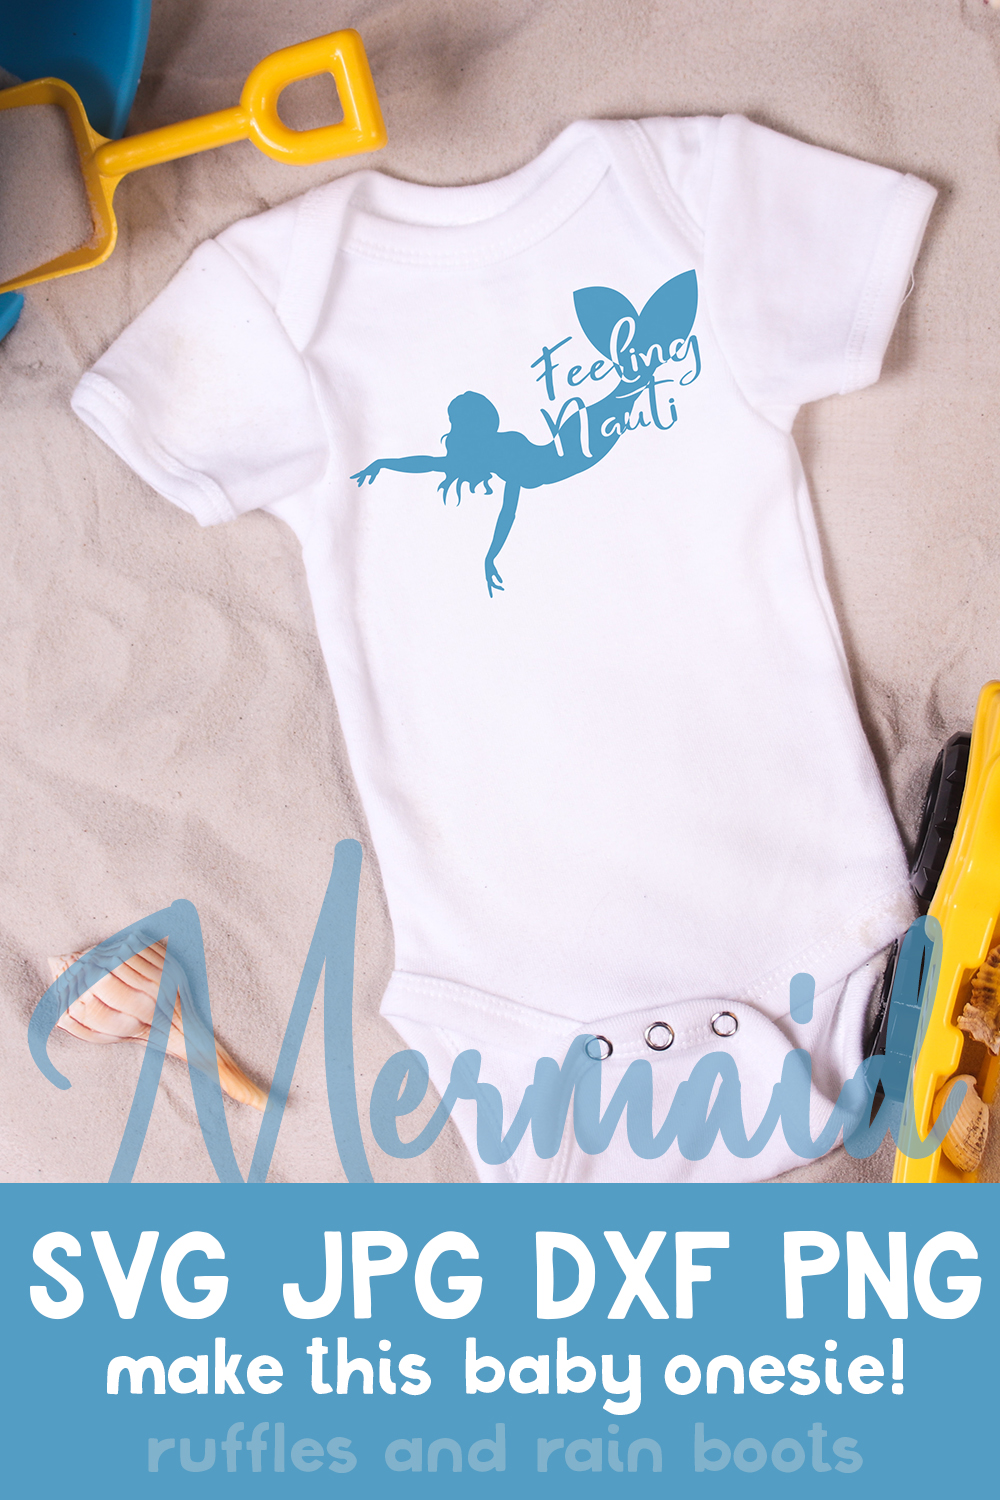 feeling nauti free mermaid Silhouette files on baby onesie on sand with beach toys scattered around it with text which reads mermaid SVG JPG DXF PNG make this baby onesie!